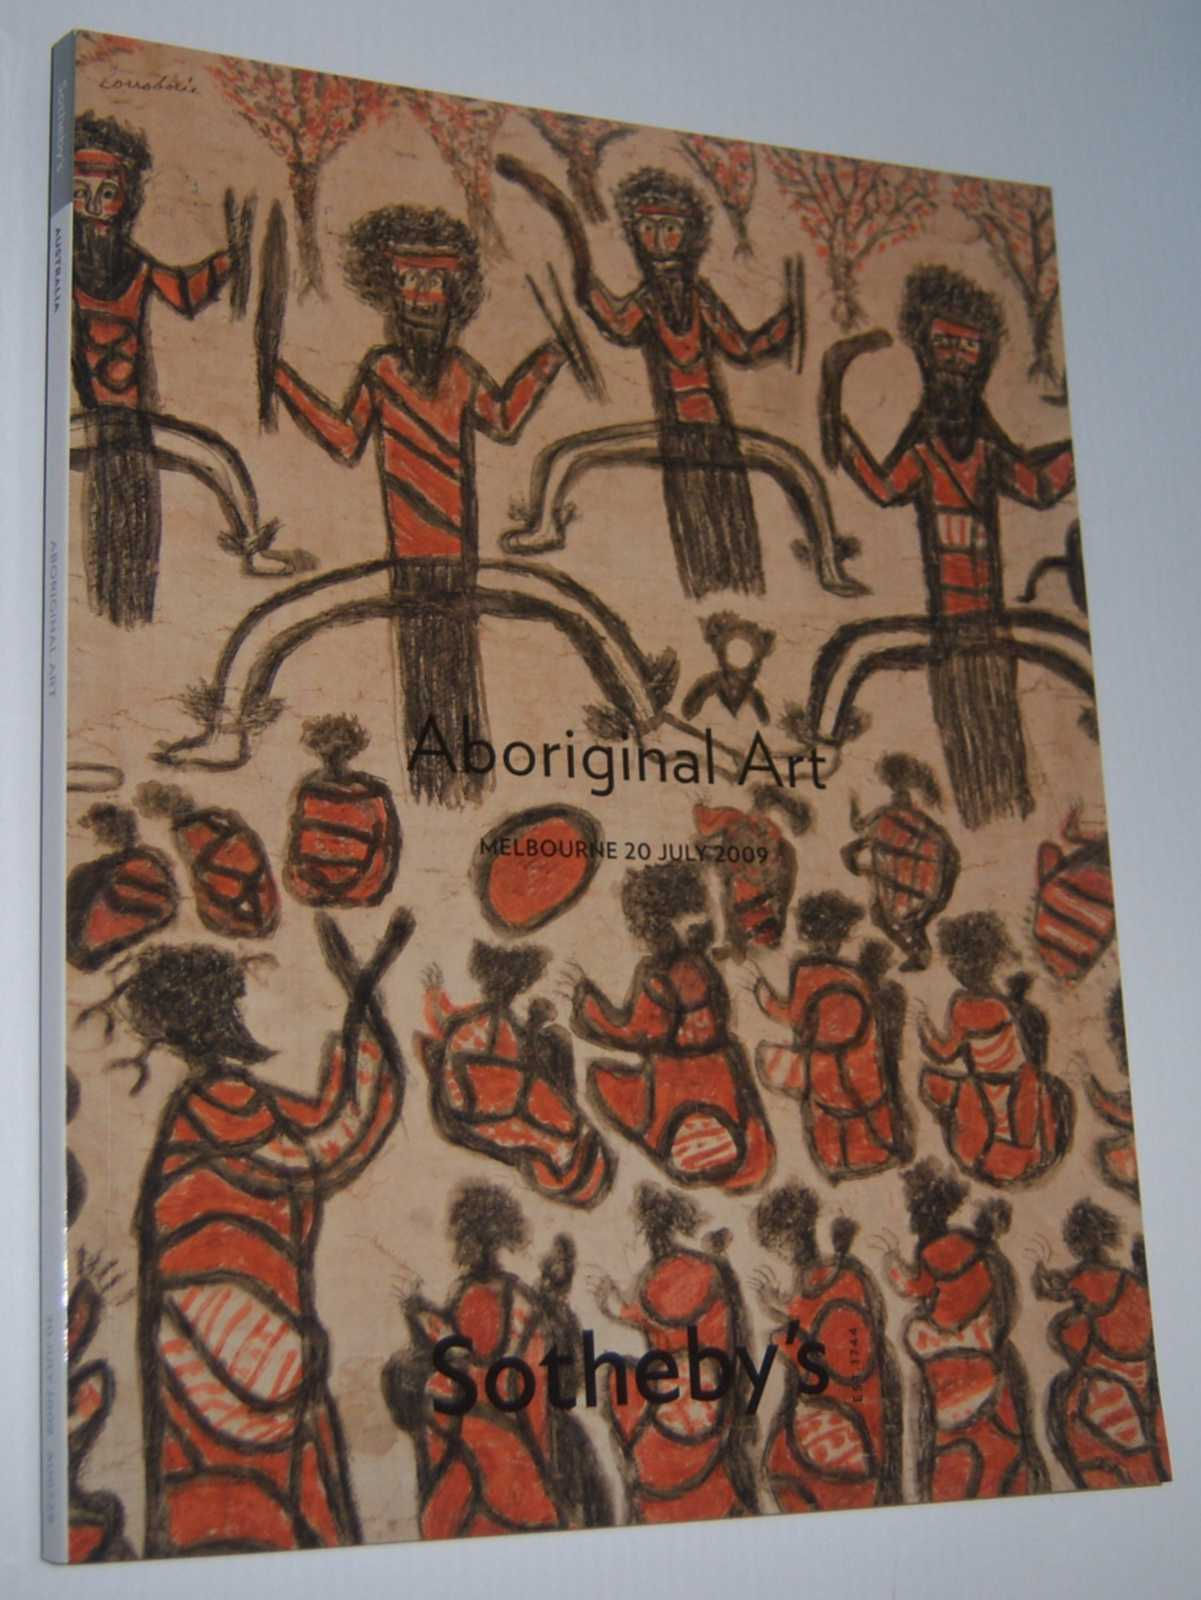 Image for SOTHEBY'S ABORIGINAL ART AUCTION CATALOGUE. Melbourne 20 July 2009